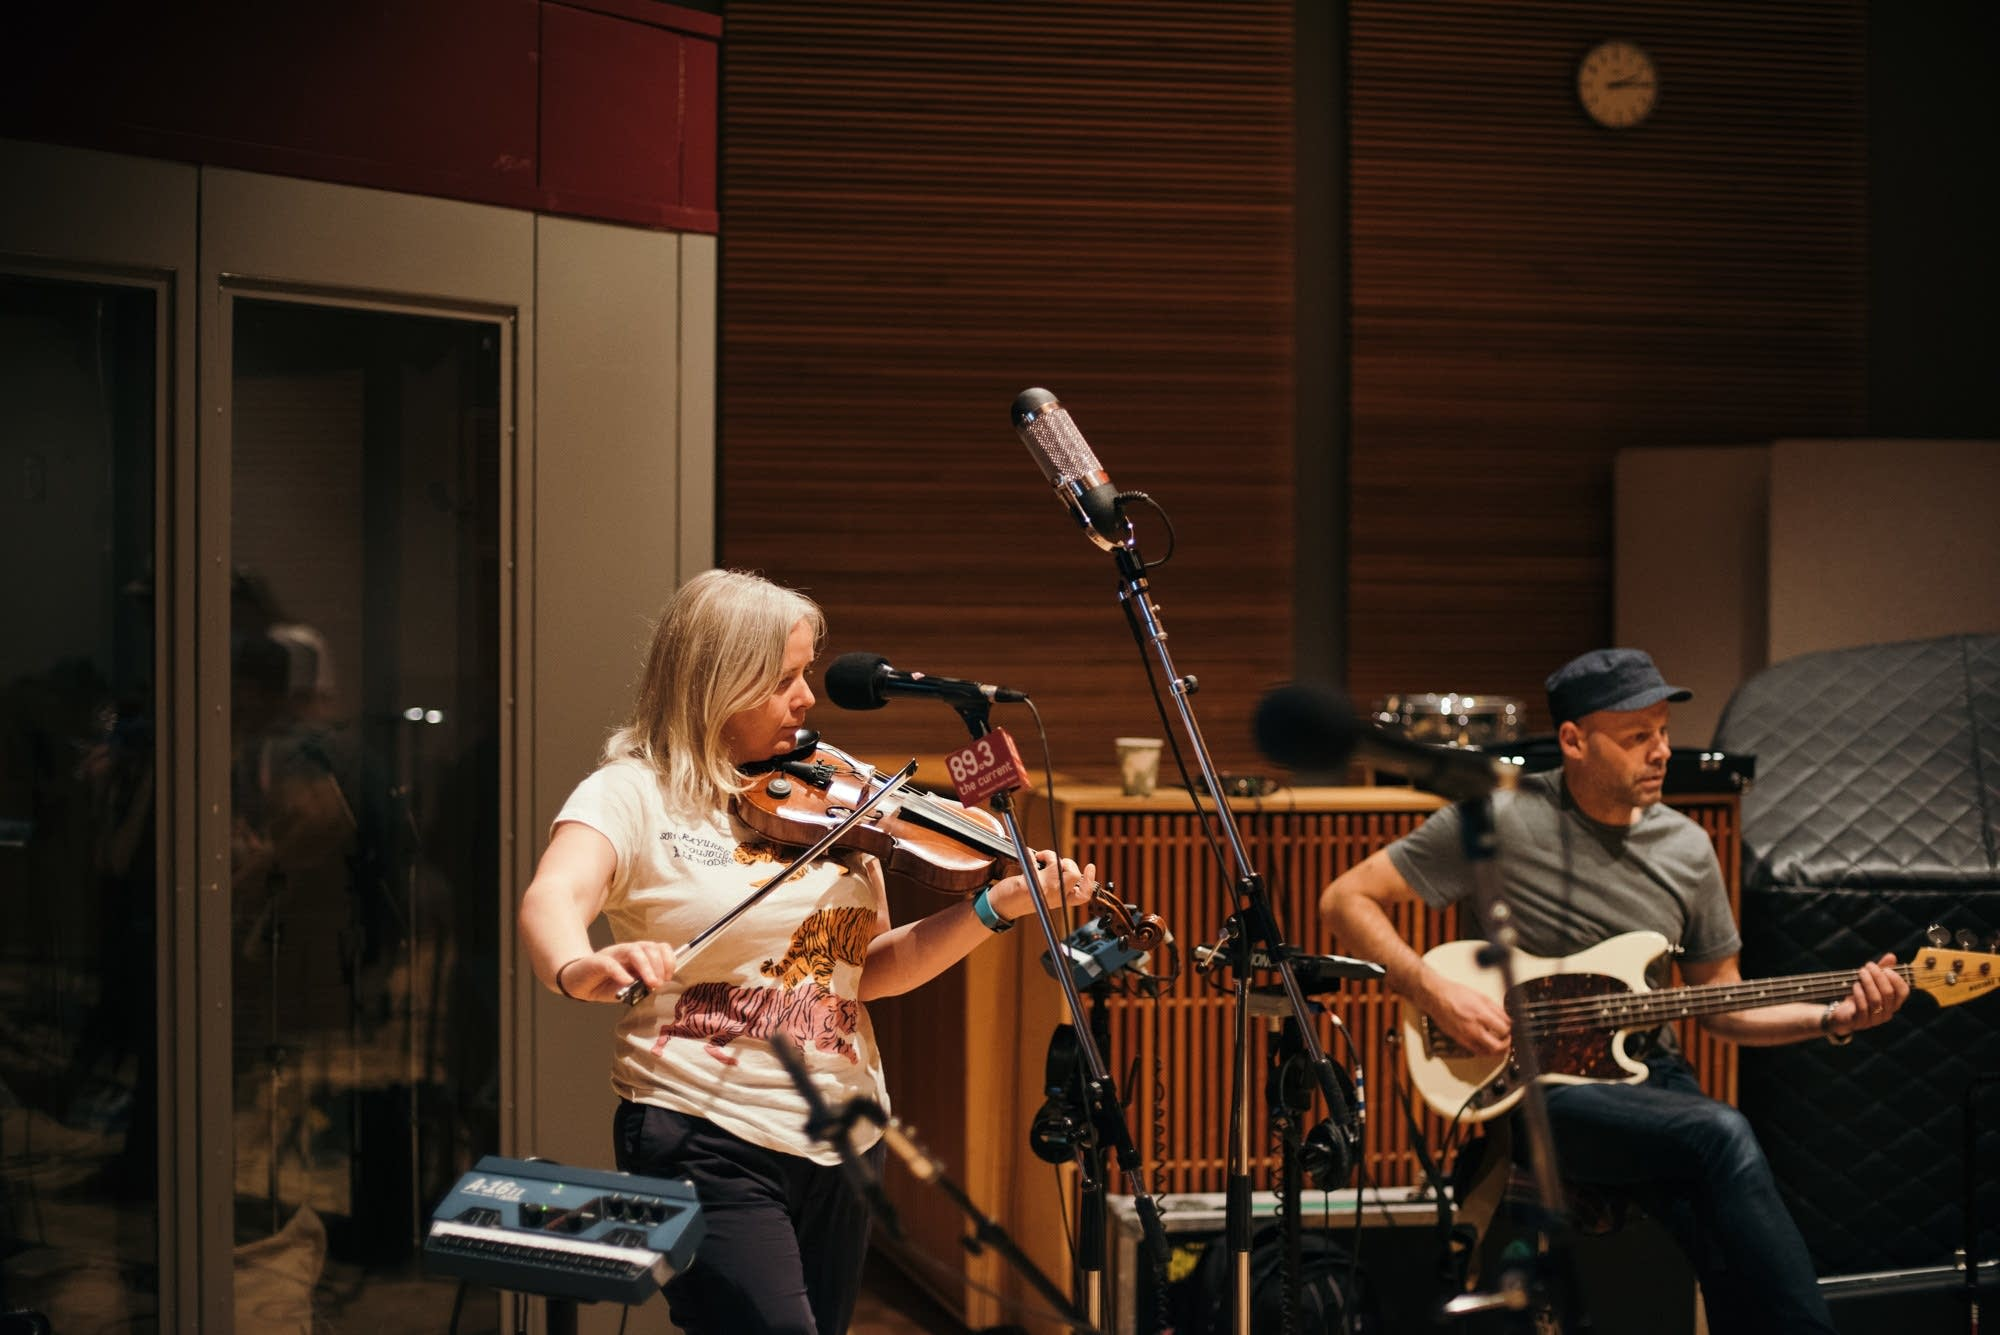 Belle and Sebastian perform in The Current studio